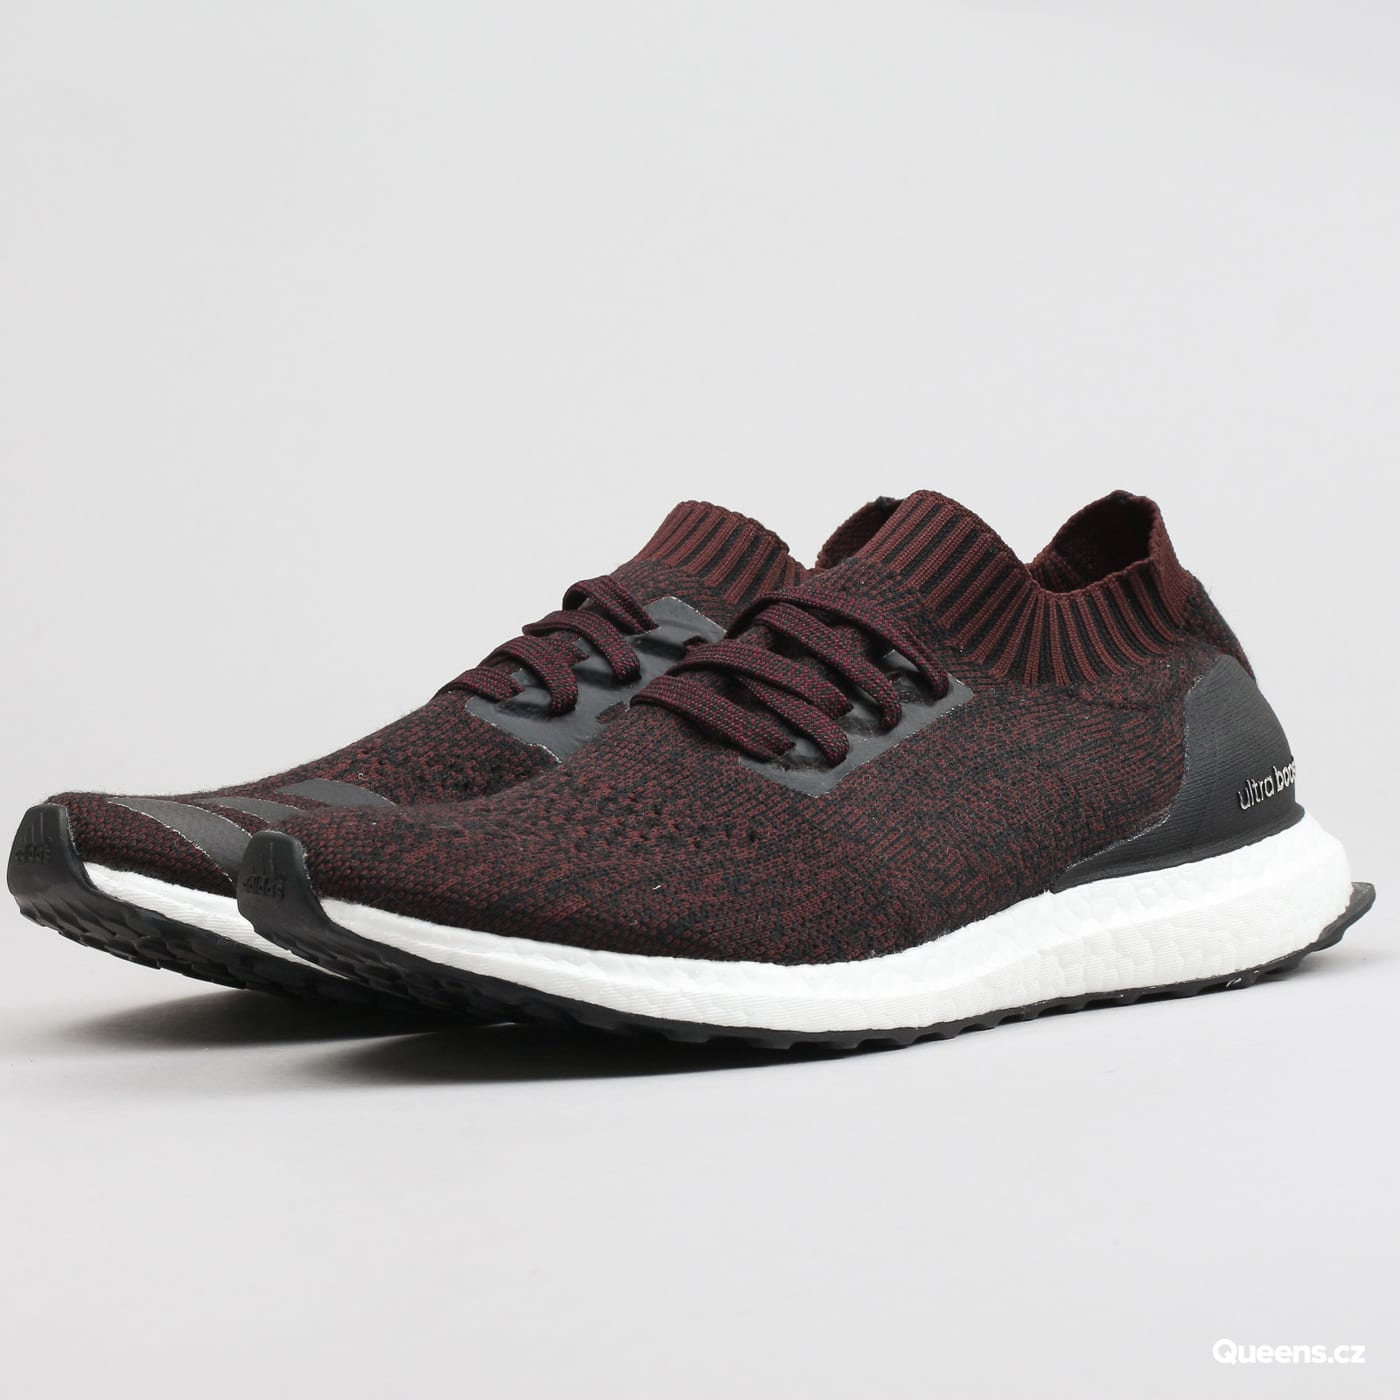 adidas UltraBOOST Uncaged core black / dark burgundy / core black